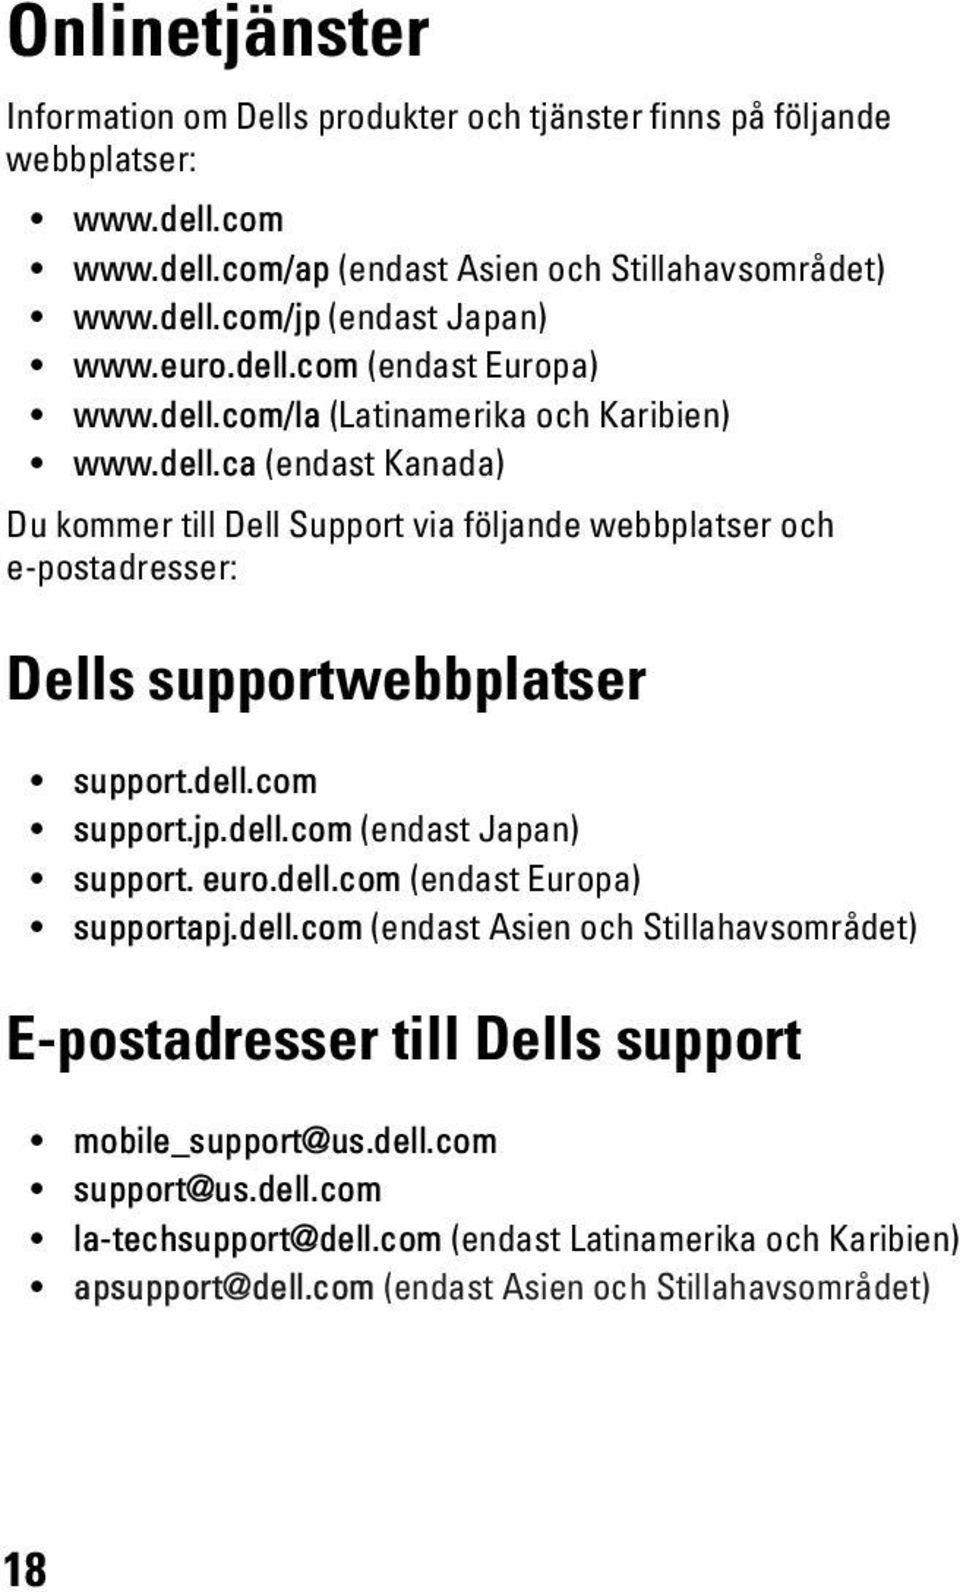 dell.com support.jp.dell.com (endast Japan) support. euro.dell.com (endast Europa) supportapj.dell.com (endast Asien och Stillahavsområdet) E-postadresser till Dells support mobile_support@us.